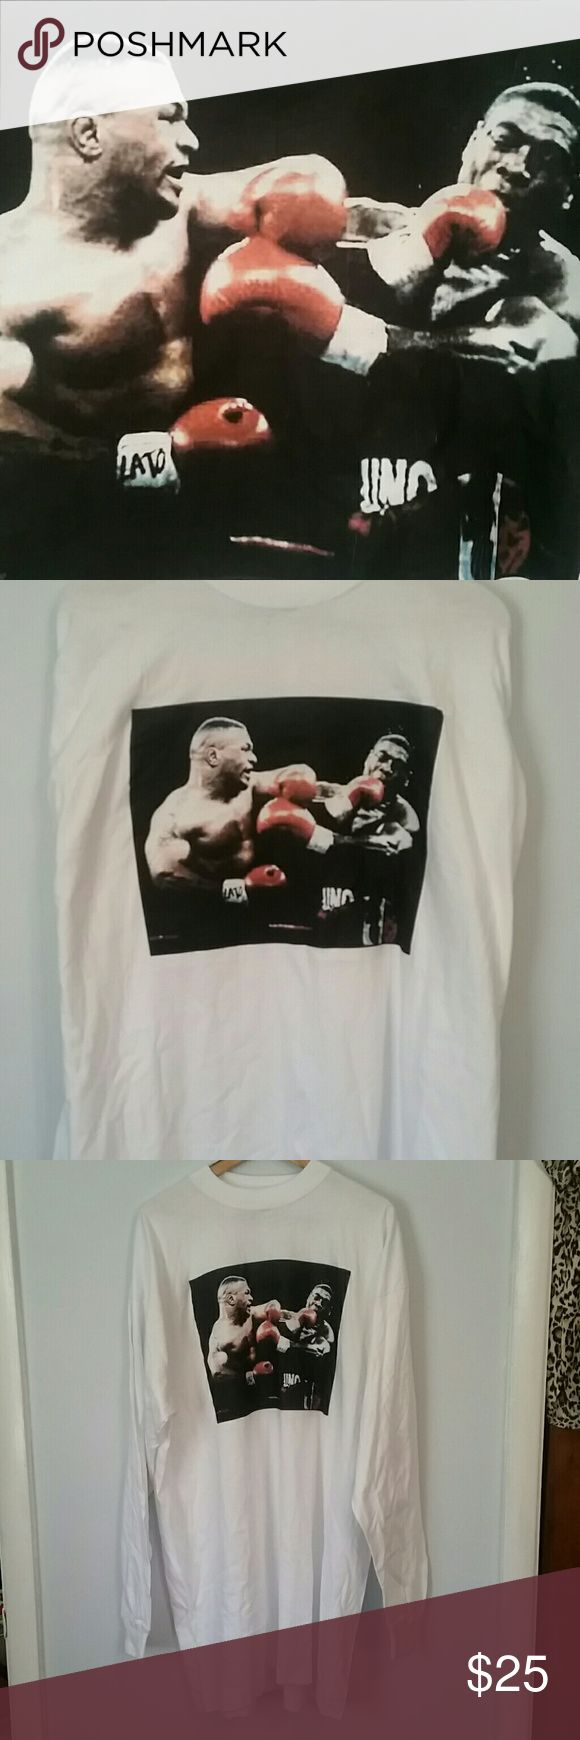 Mike Tyson long sleeve 4xl Retro vintage Mike Tyson image taken from fight. SAAD  Shirts Tees - Short Sleeve